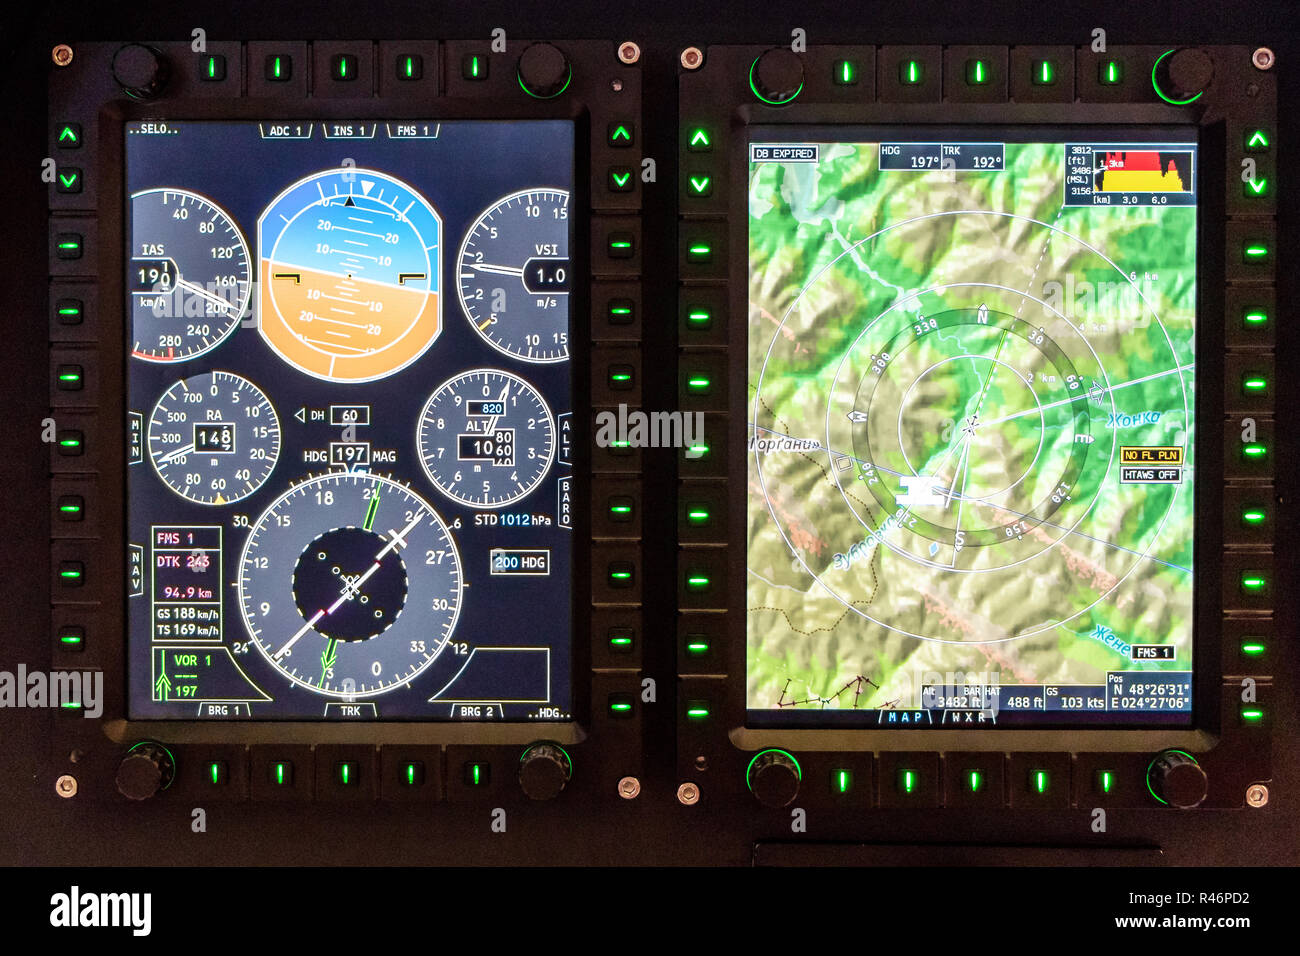 control panel and monitor dotelchikov small private aircraft - Stock Image